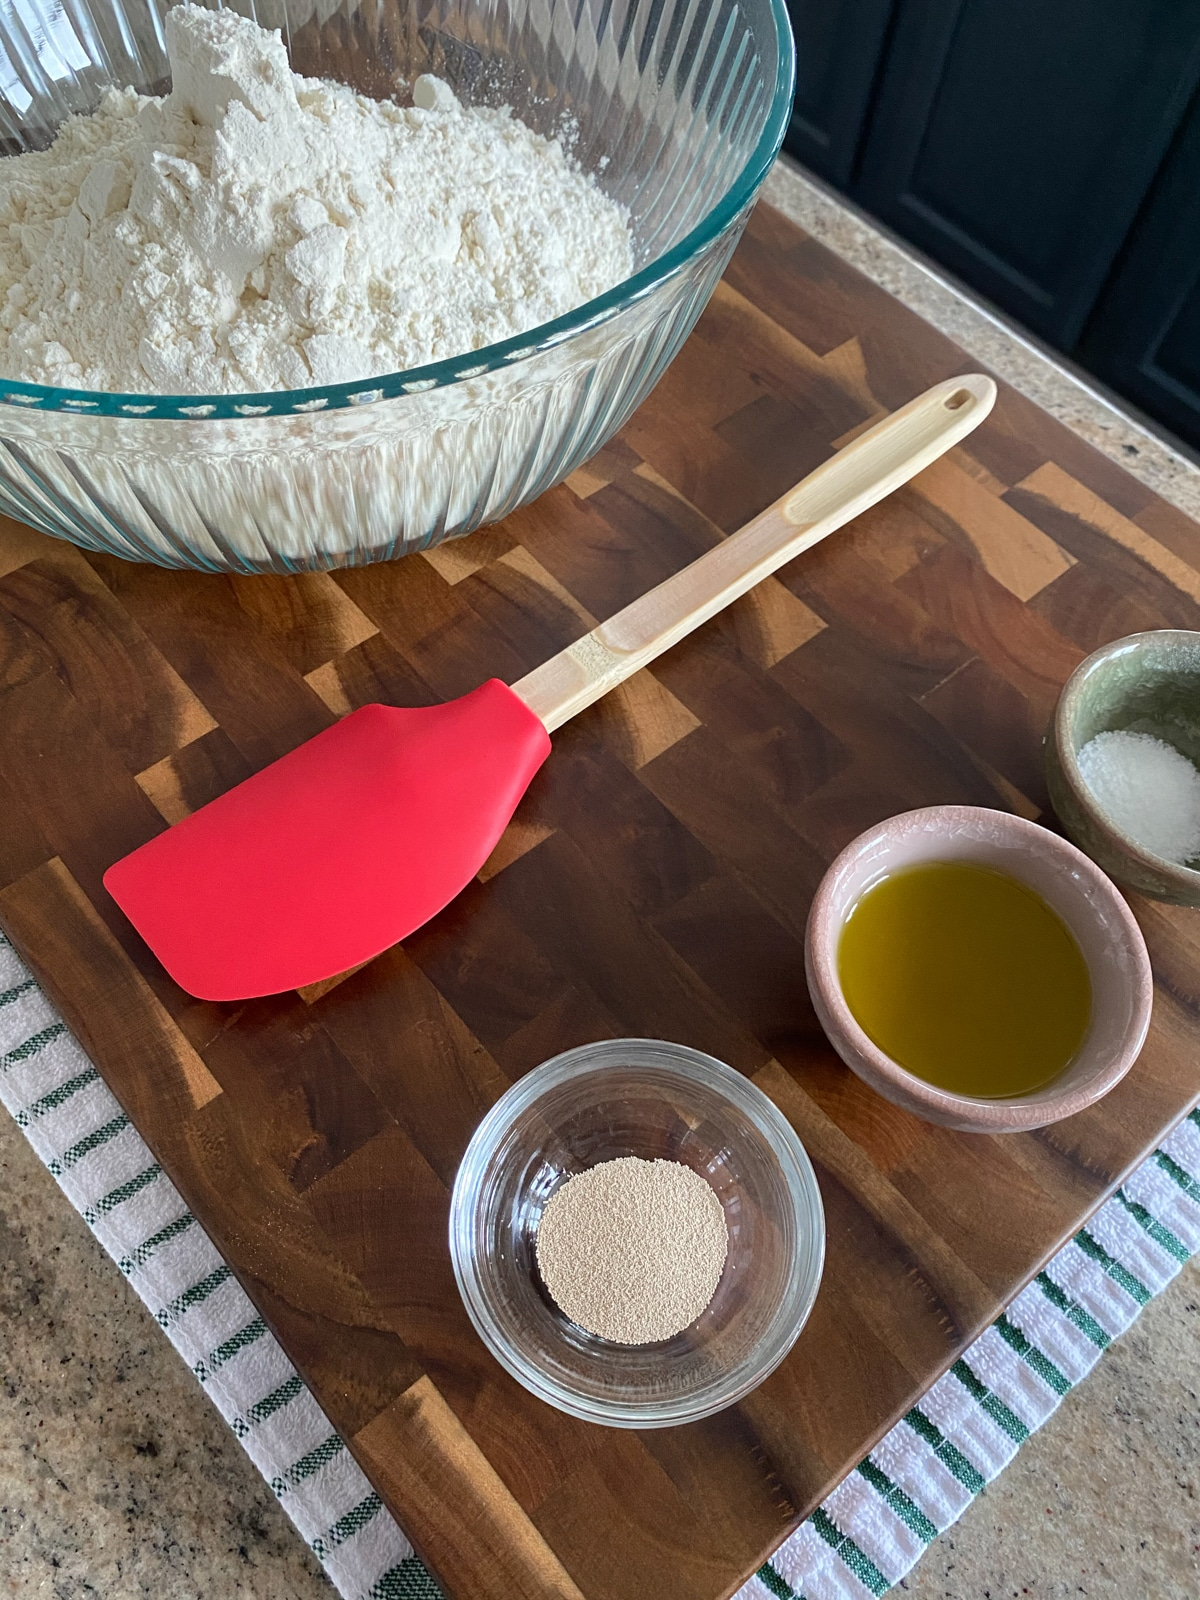 Ingredients for focaccia